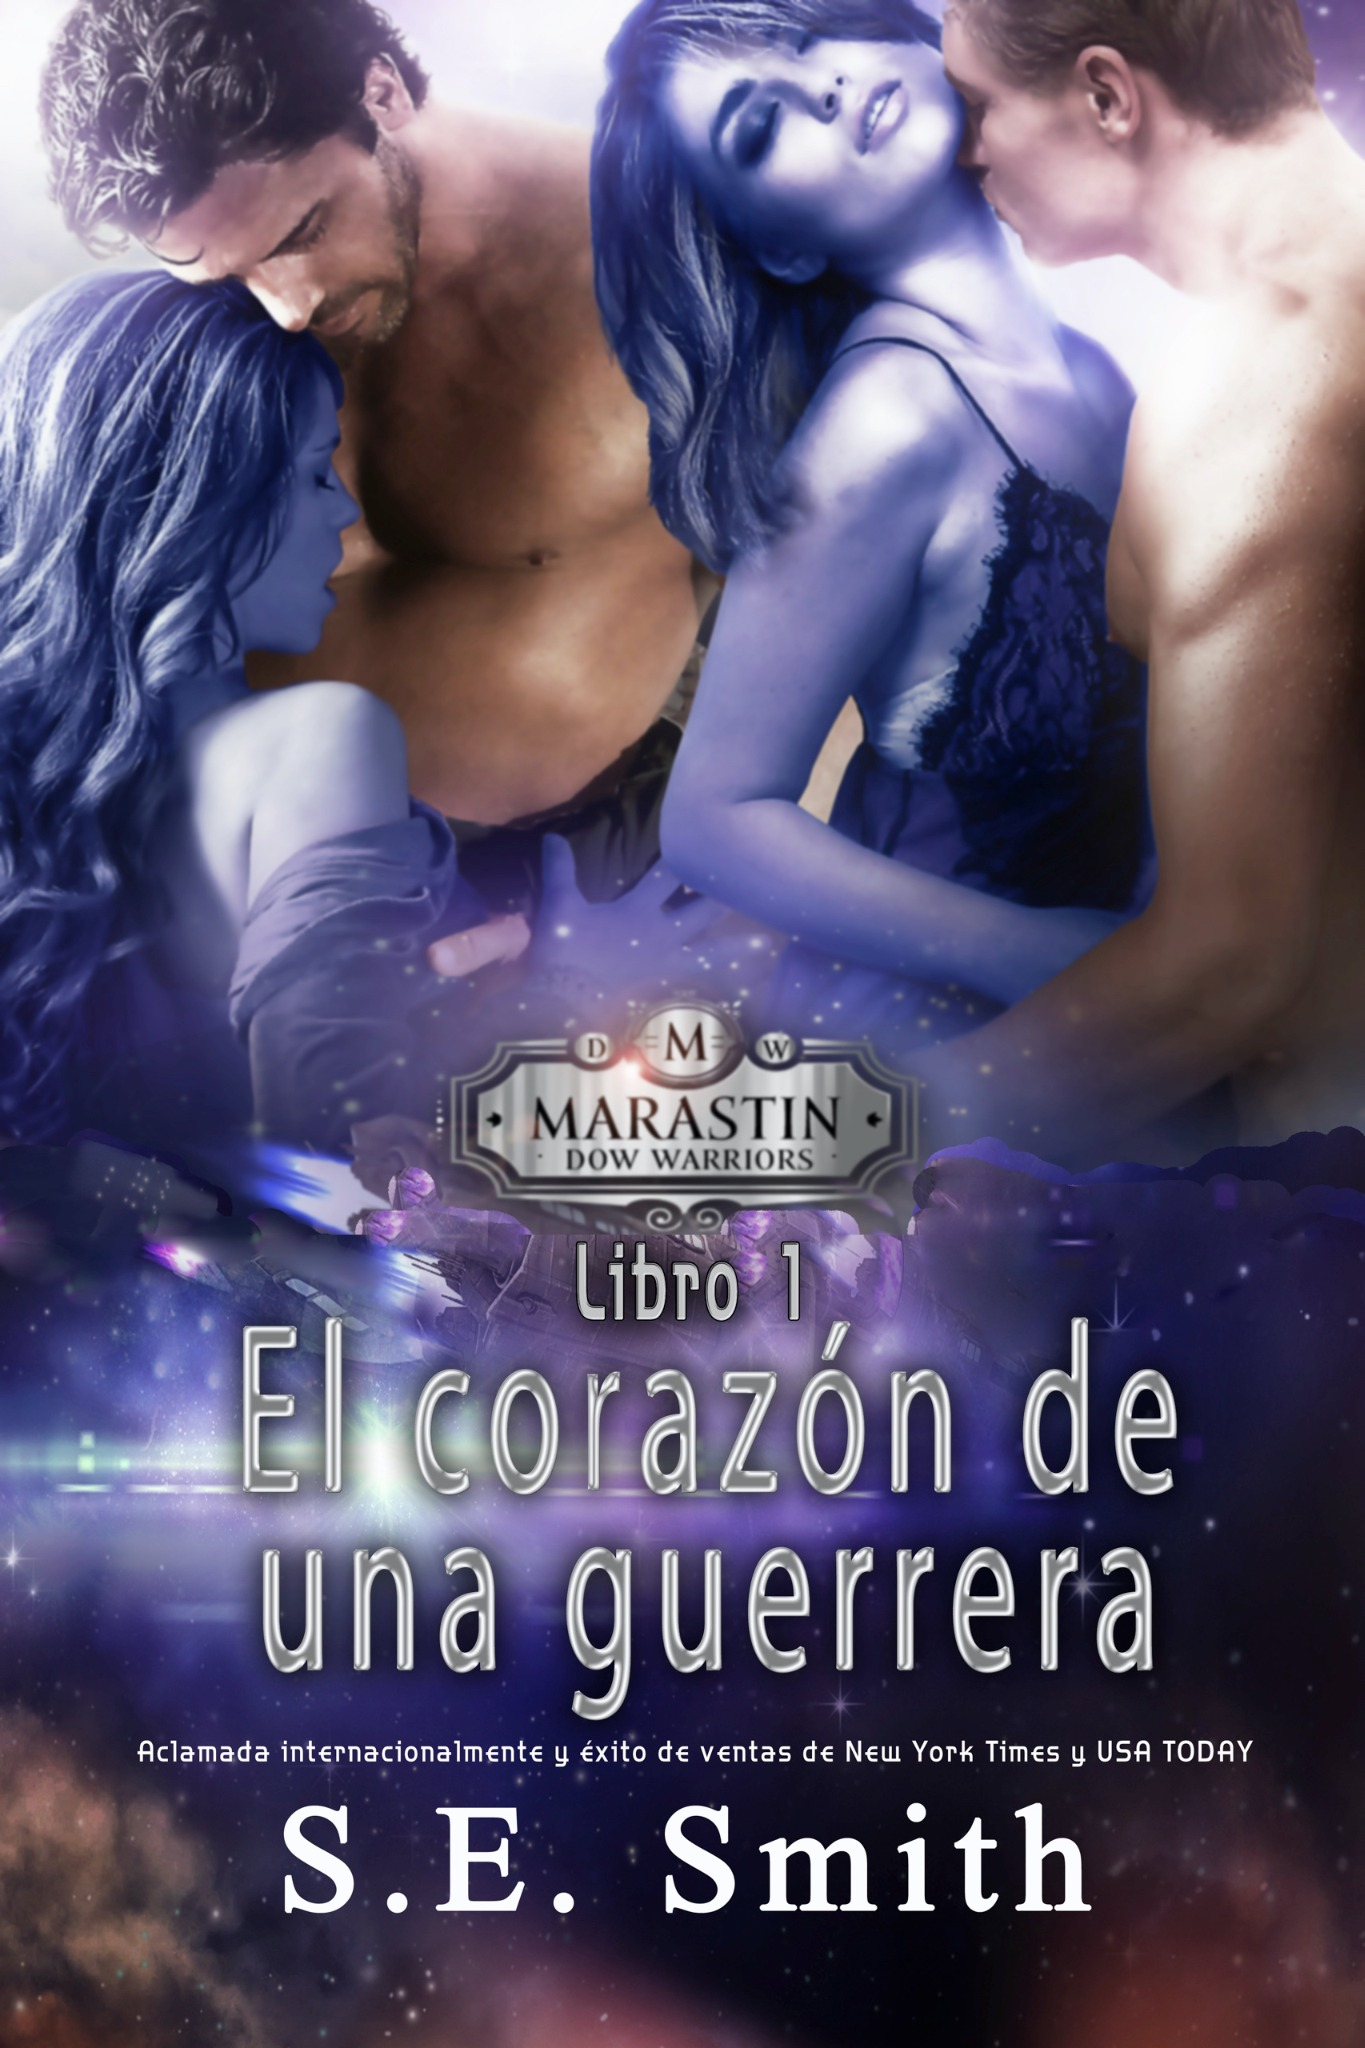 El corazón de una guerrera:  Marastin Dow Warriors Libro 1 (ebook: Kindle y epub)